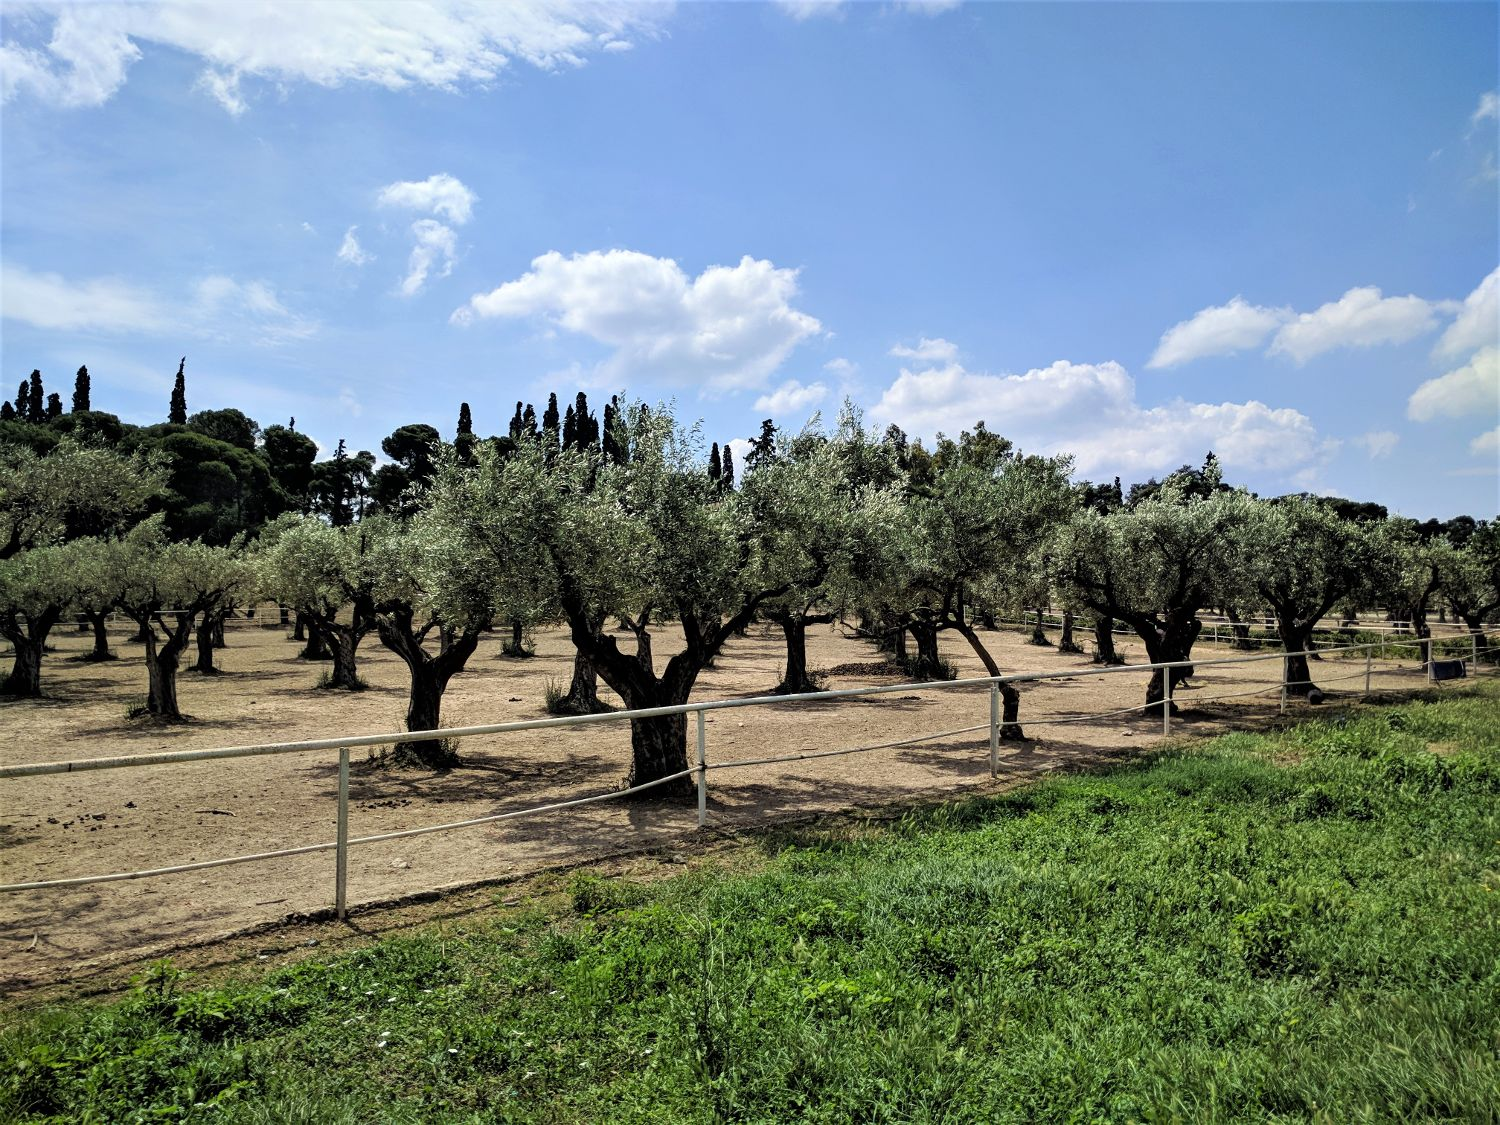 An olive grove in the city of Athens. Source: Truevoyagers